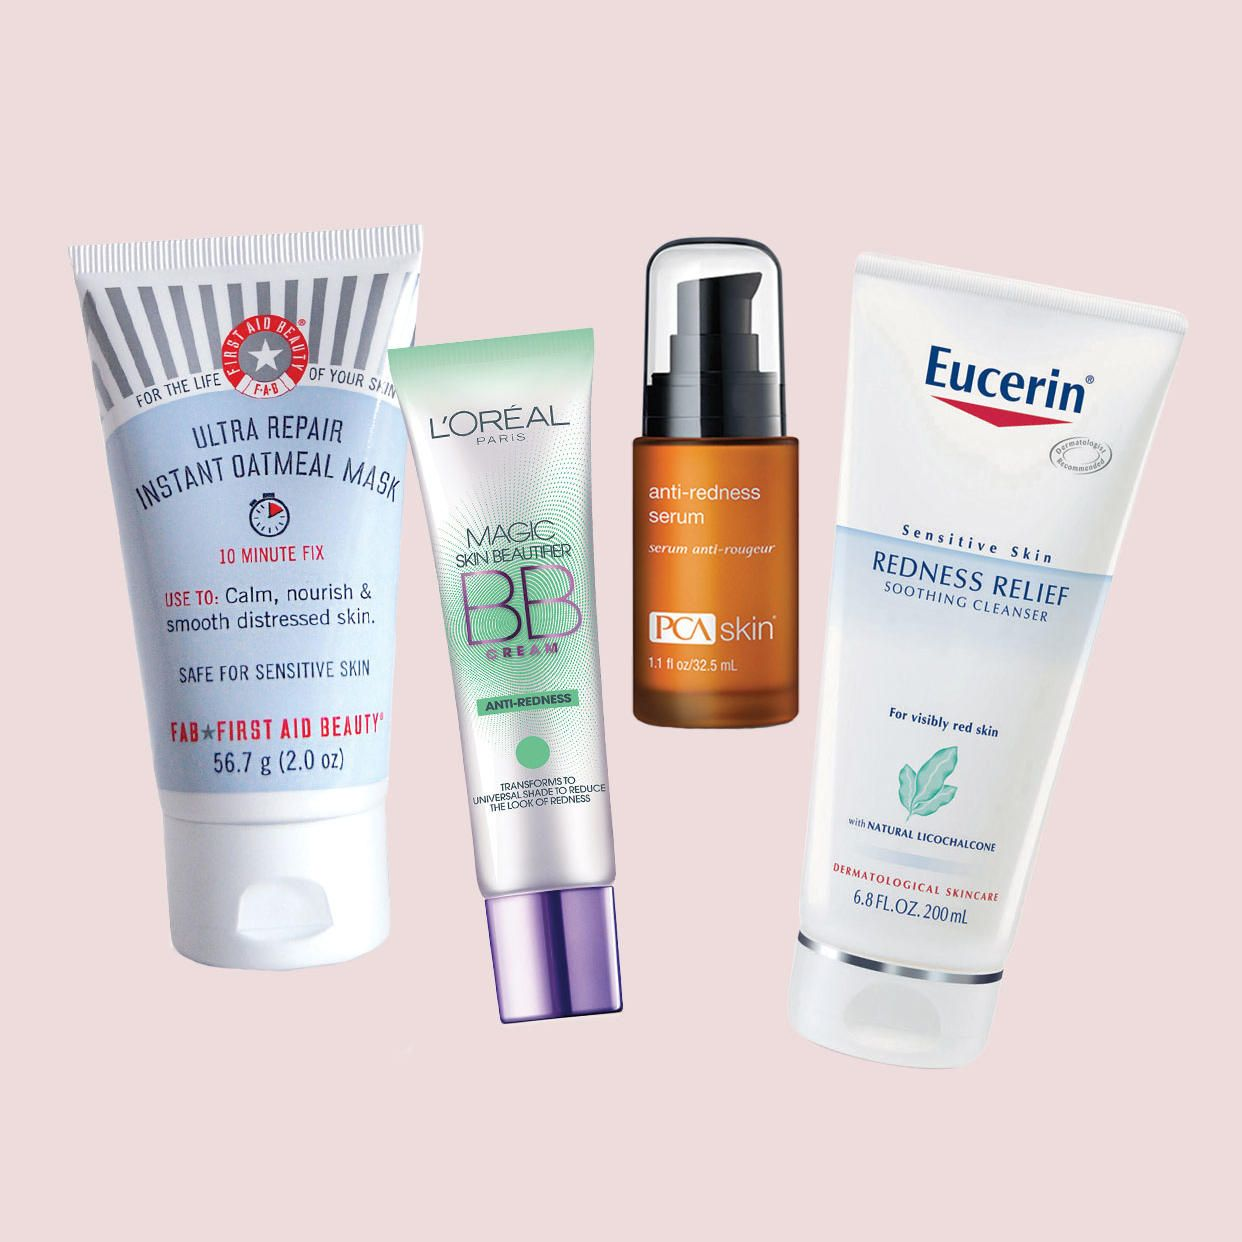 How to Care for Your Sensitive Skin Sensitive skin care